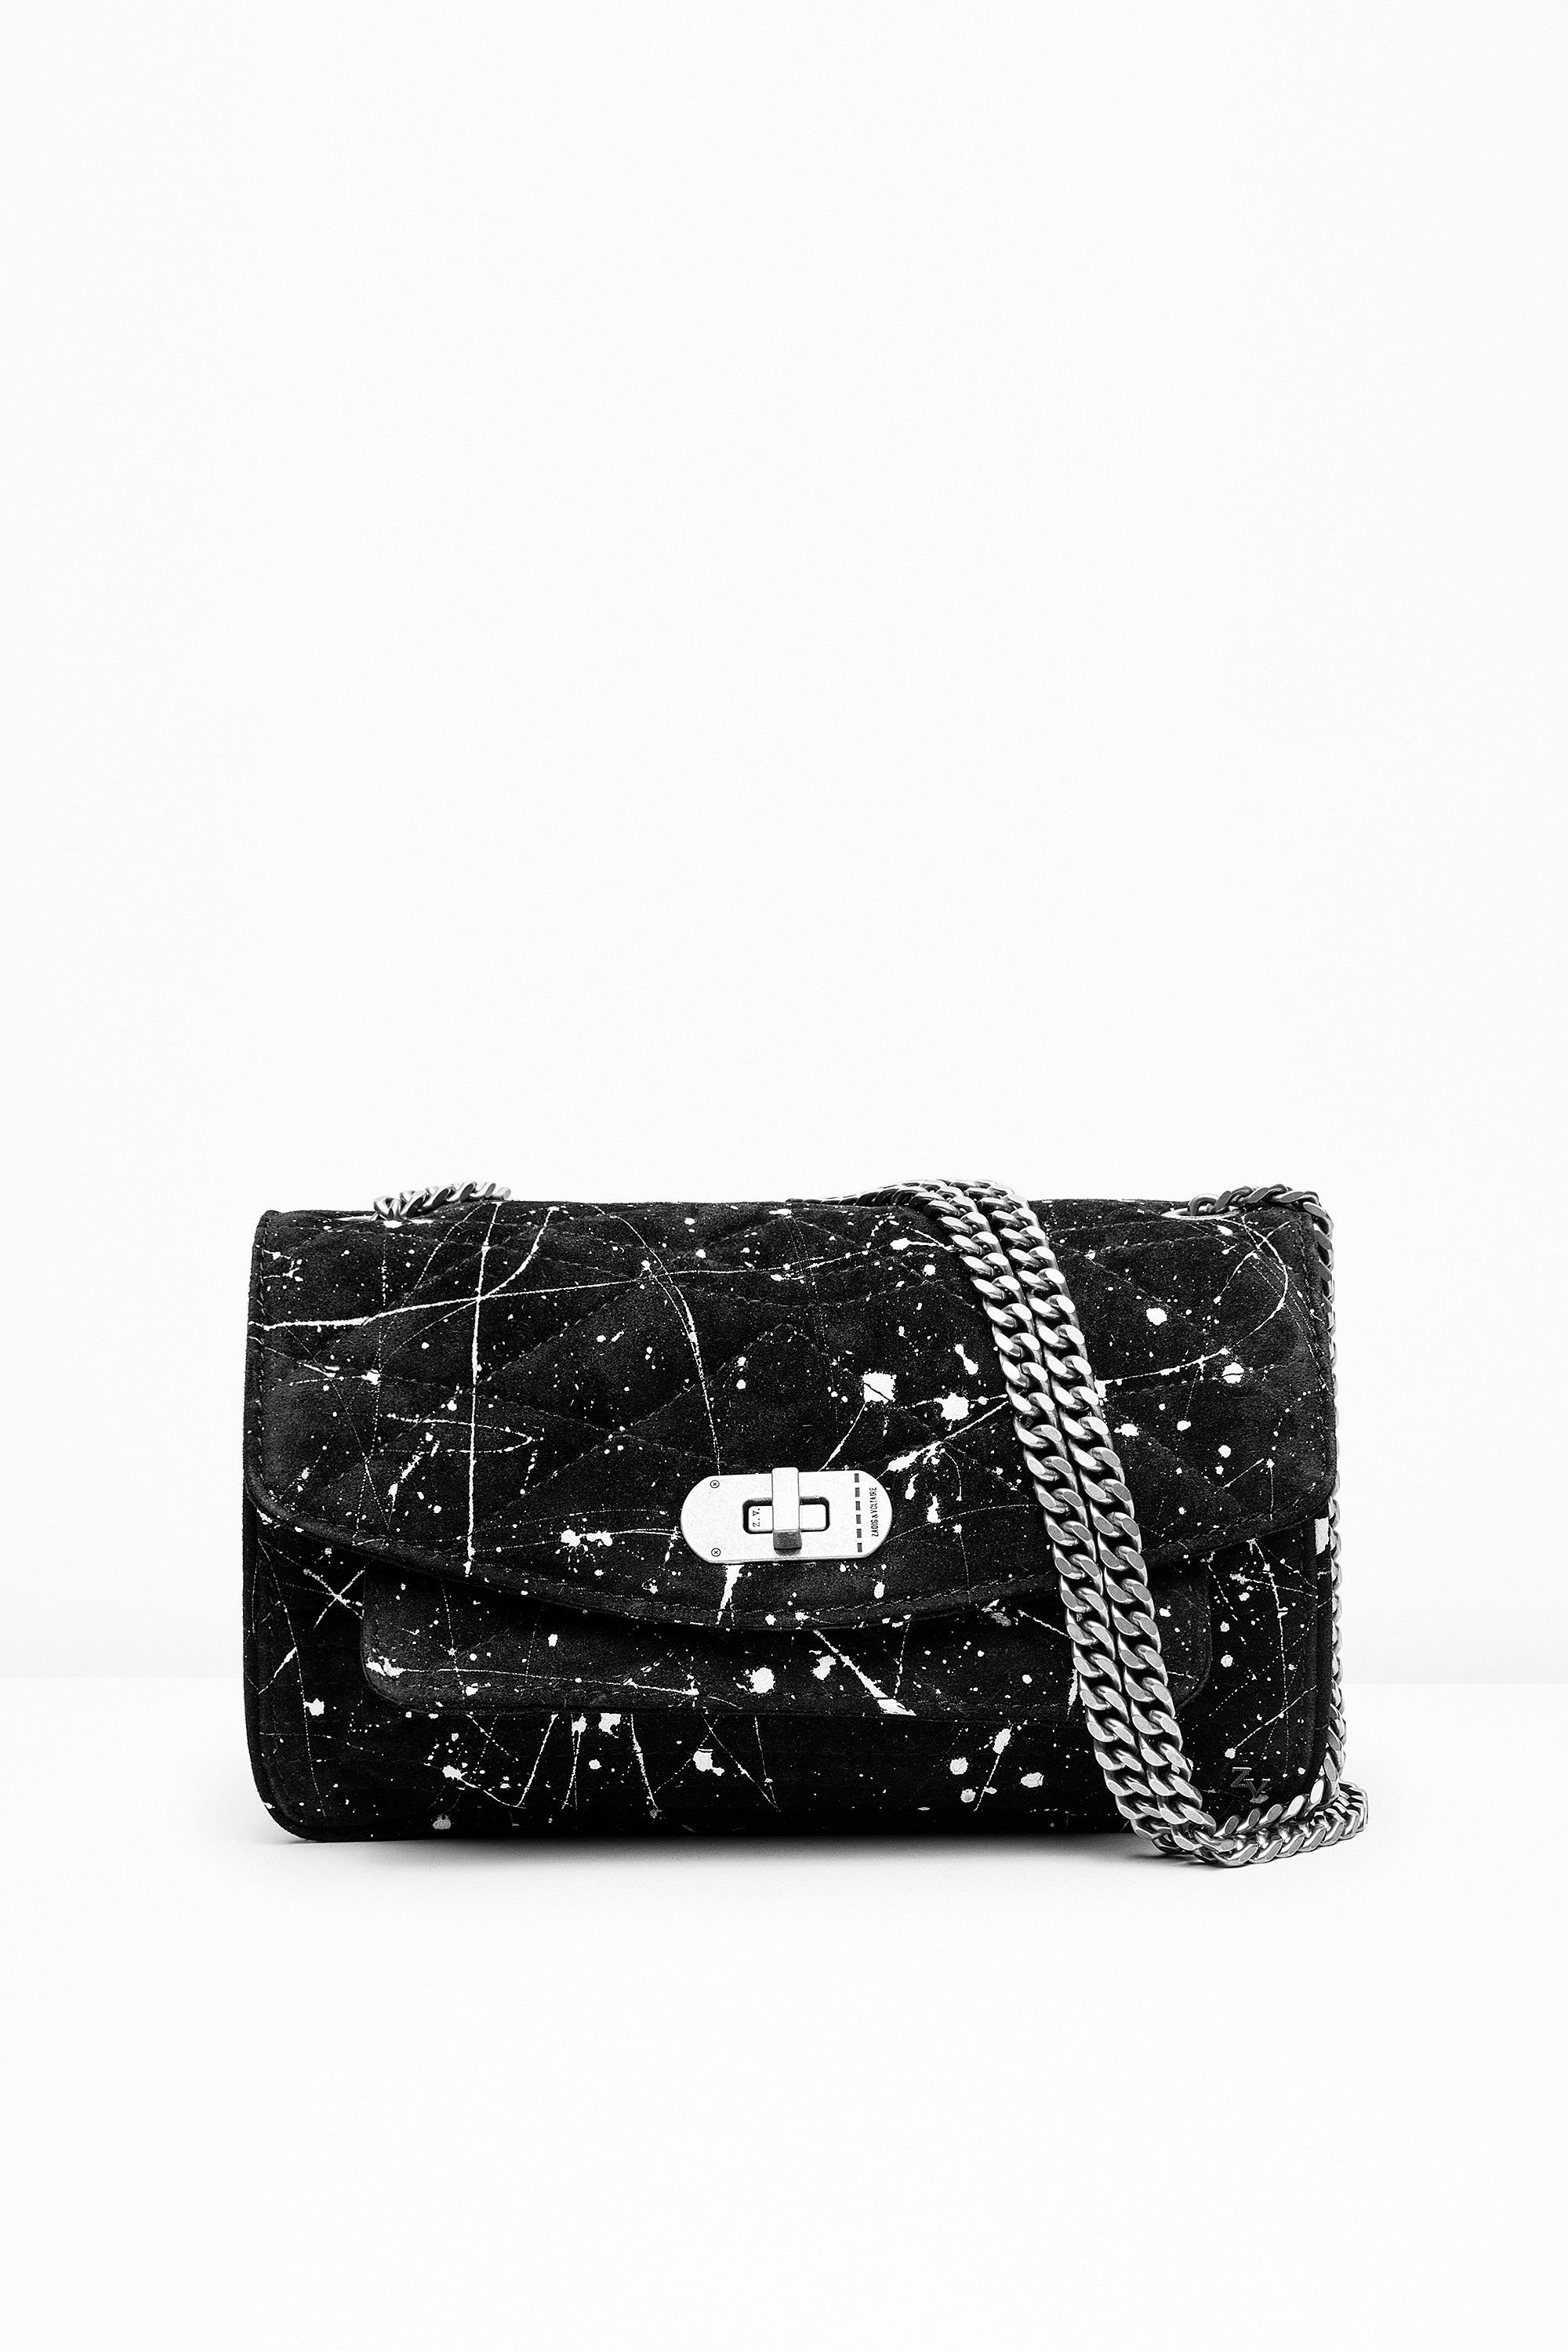 """2dcd3bf9c4 Zadig & Voltaire bag, chain strap, can be worn cross body or on the shoulder,  ZV rivet and military clasp, engraved eyelets, 6.5x18x26cm/2.3x7x10.2"""", ..."""